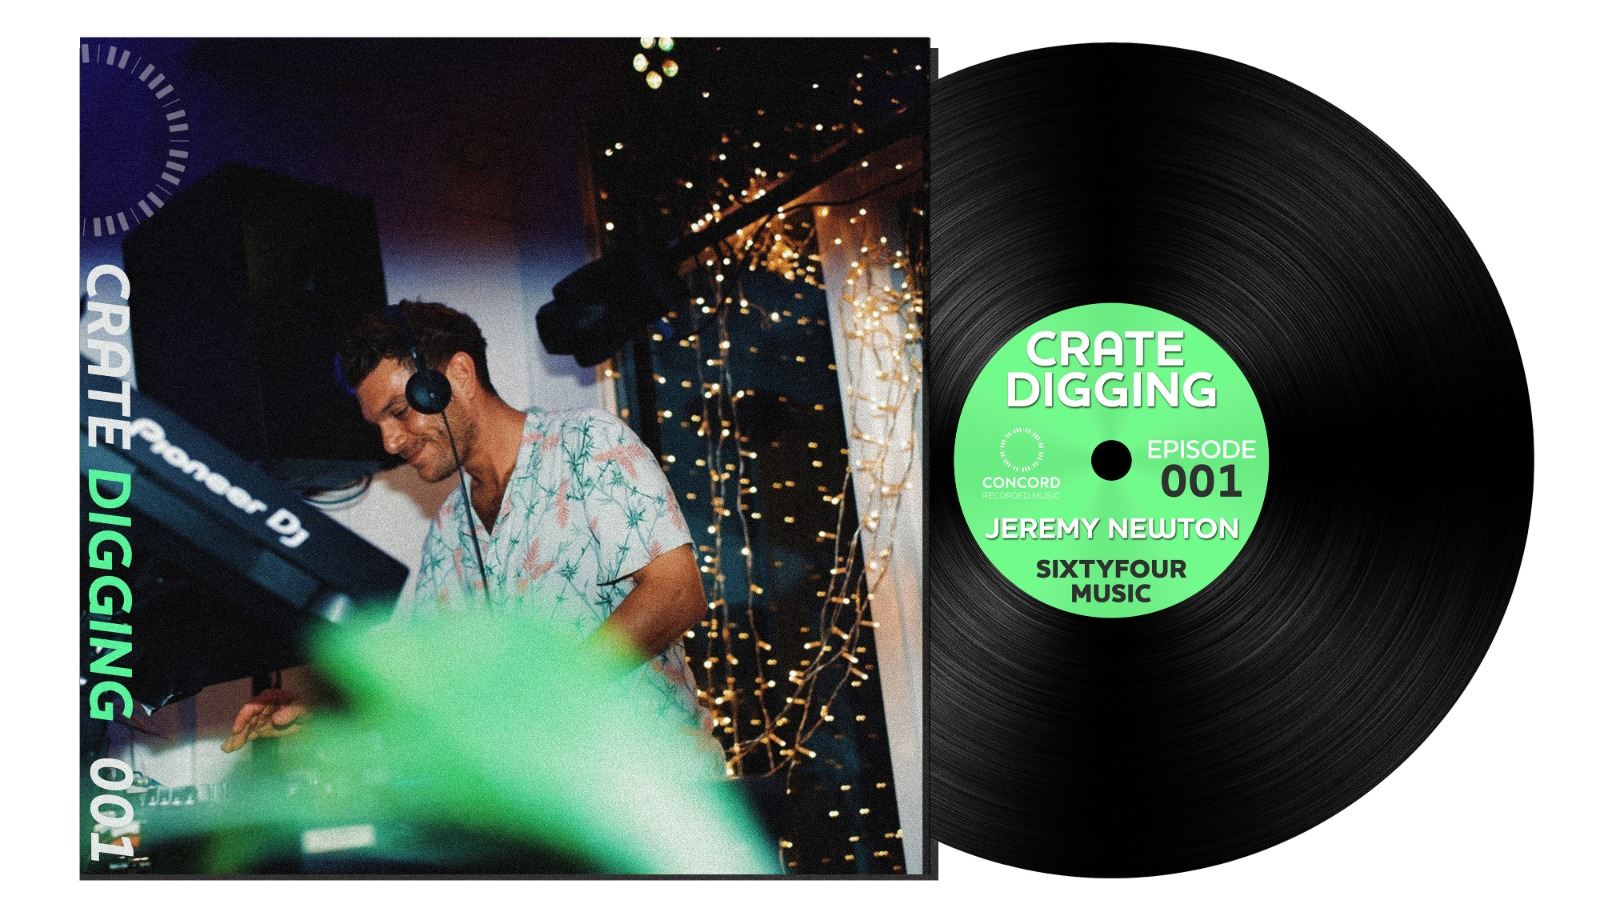 Crate Digging: Jeremy Newton, SixtyFour Music